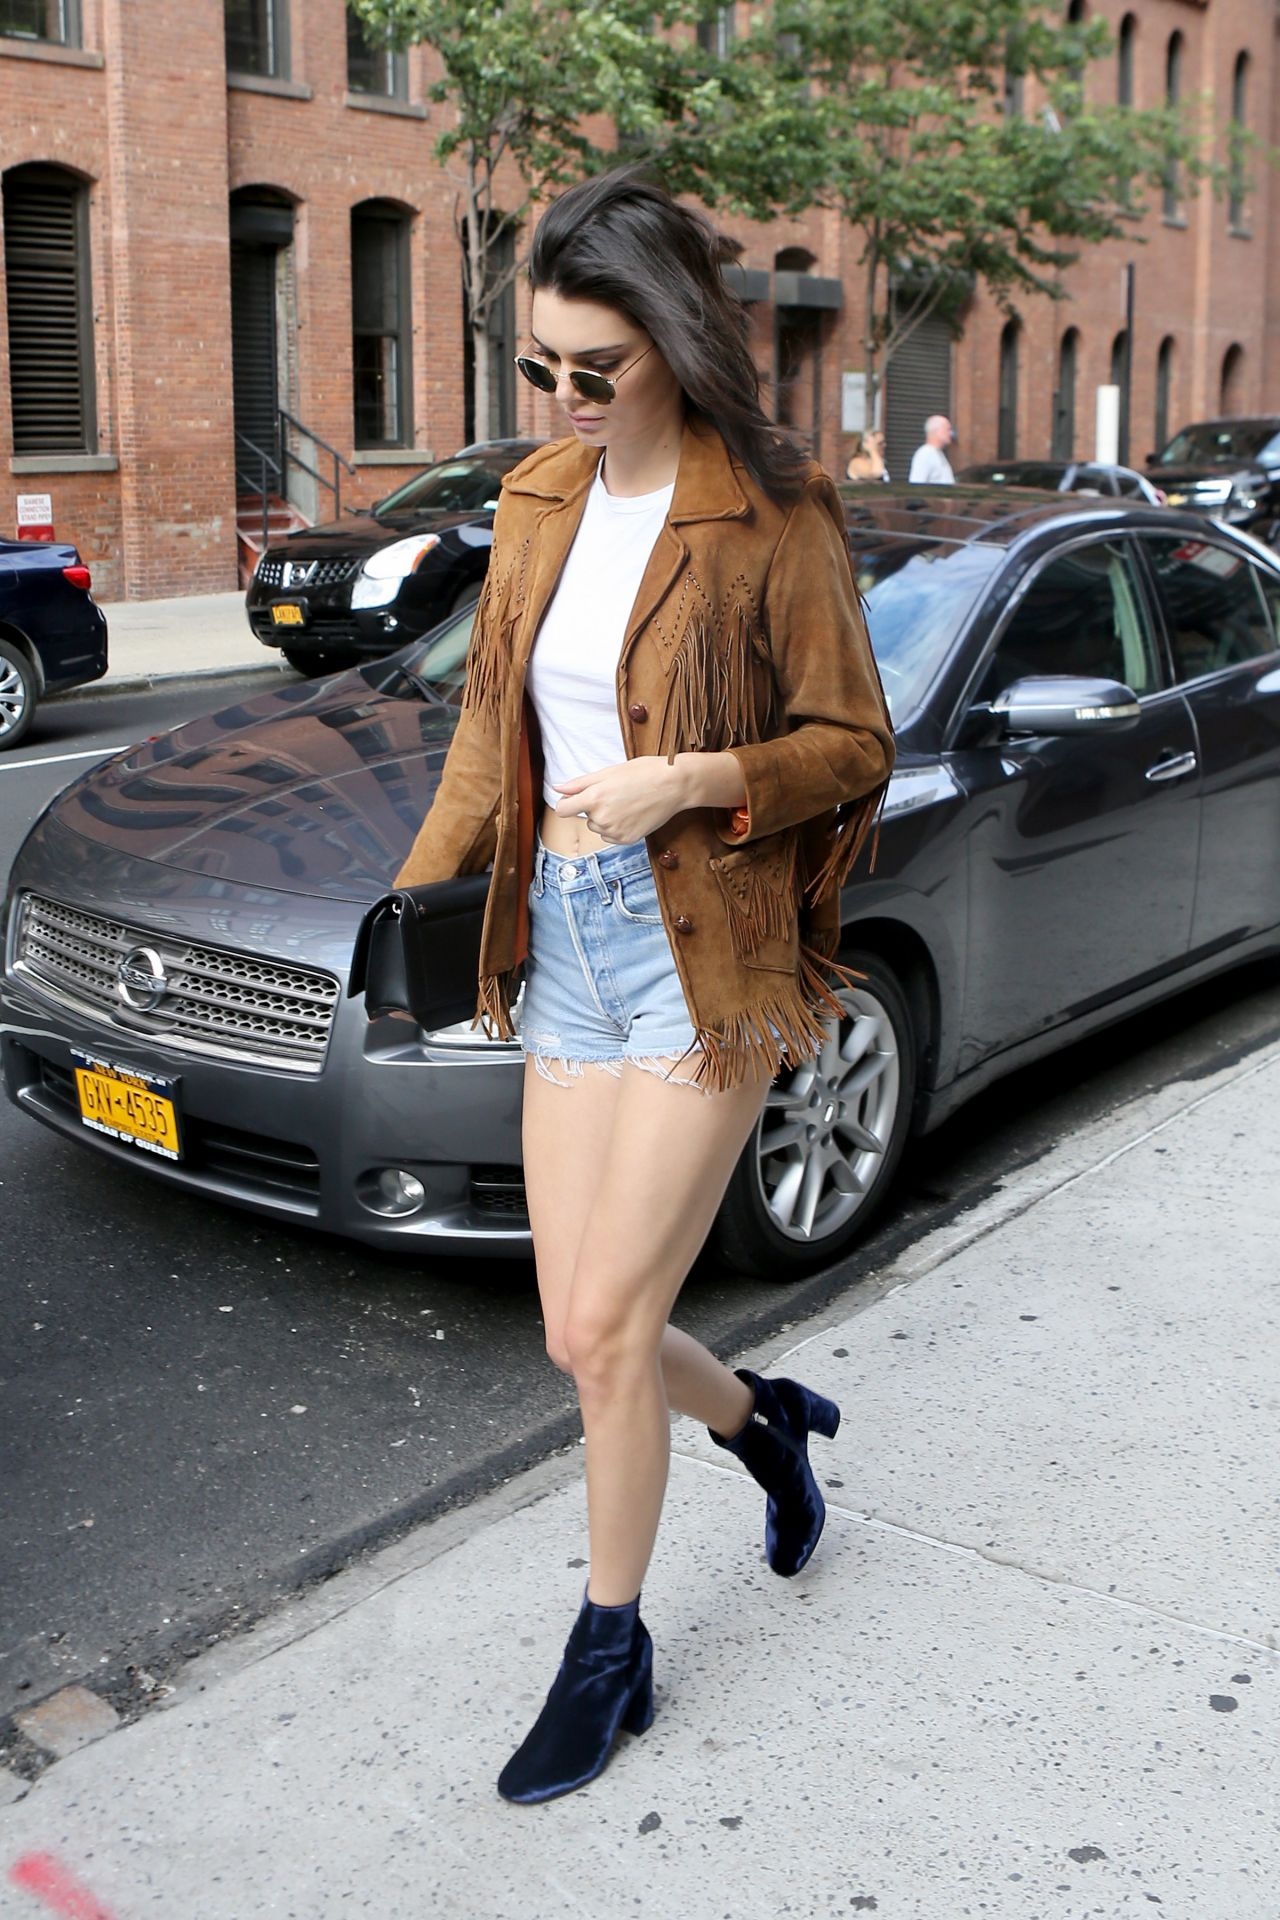 kendall jenner in jeans shorts  new york city 07102016